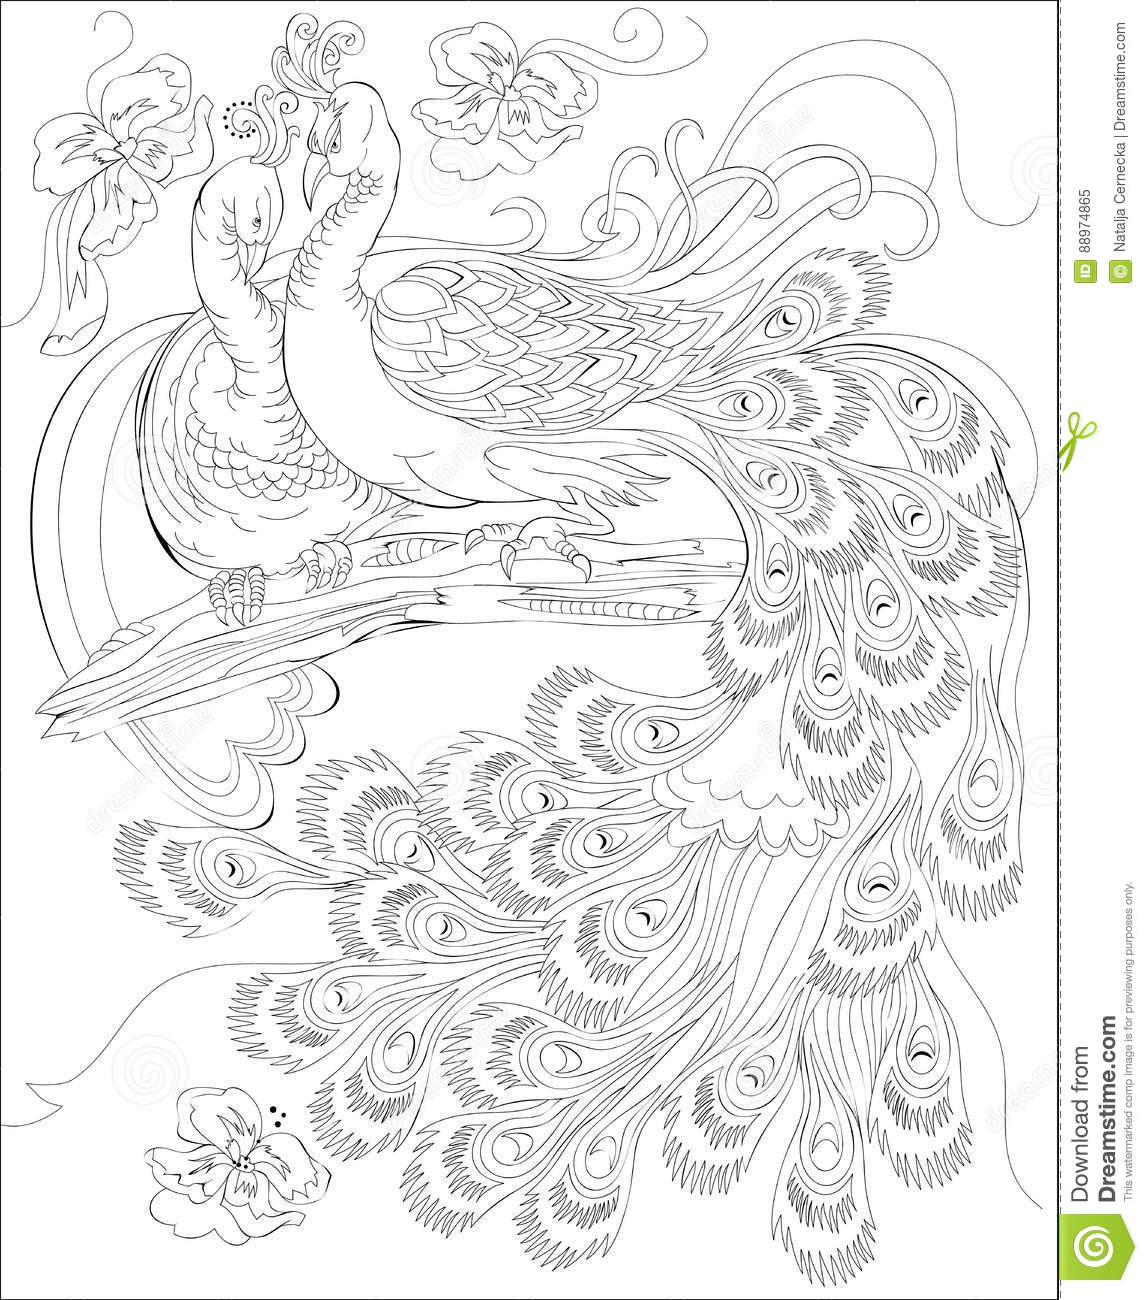 worksheet Scale Drawings Worksheet black and white page for coloring fantasy drawing of peacocks royalty free vector